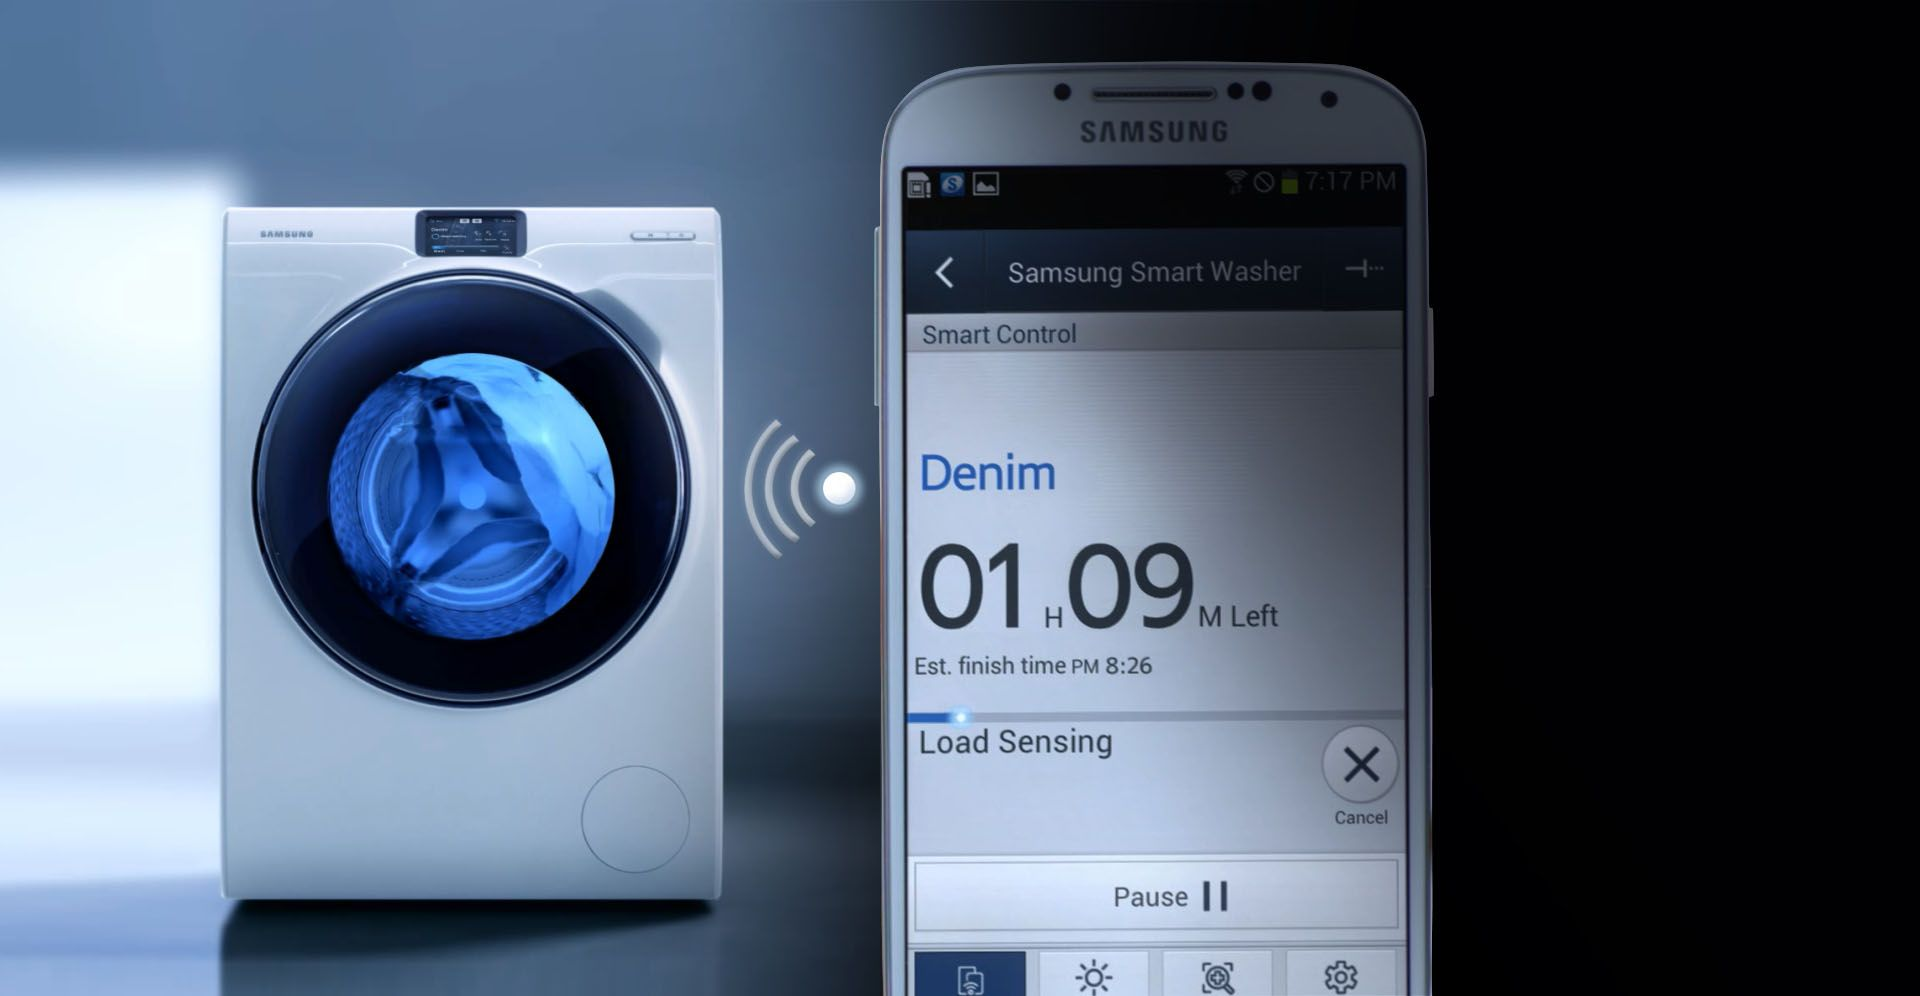 Samsung Wifi Smart Control Samsung Washing Machine Samsung